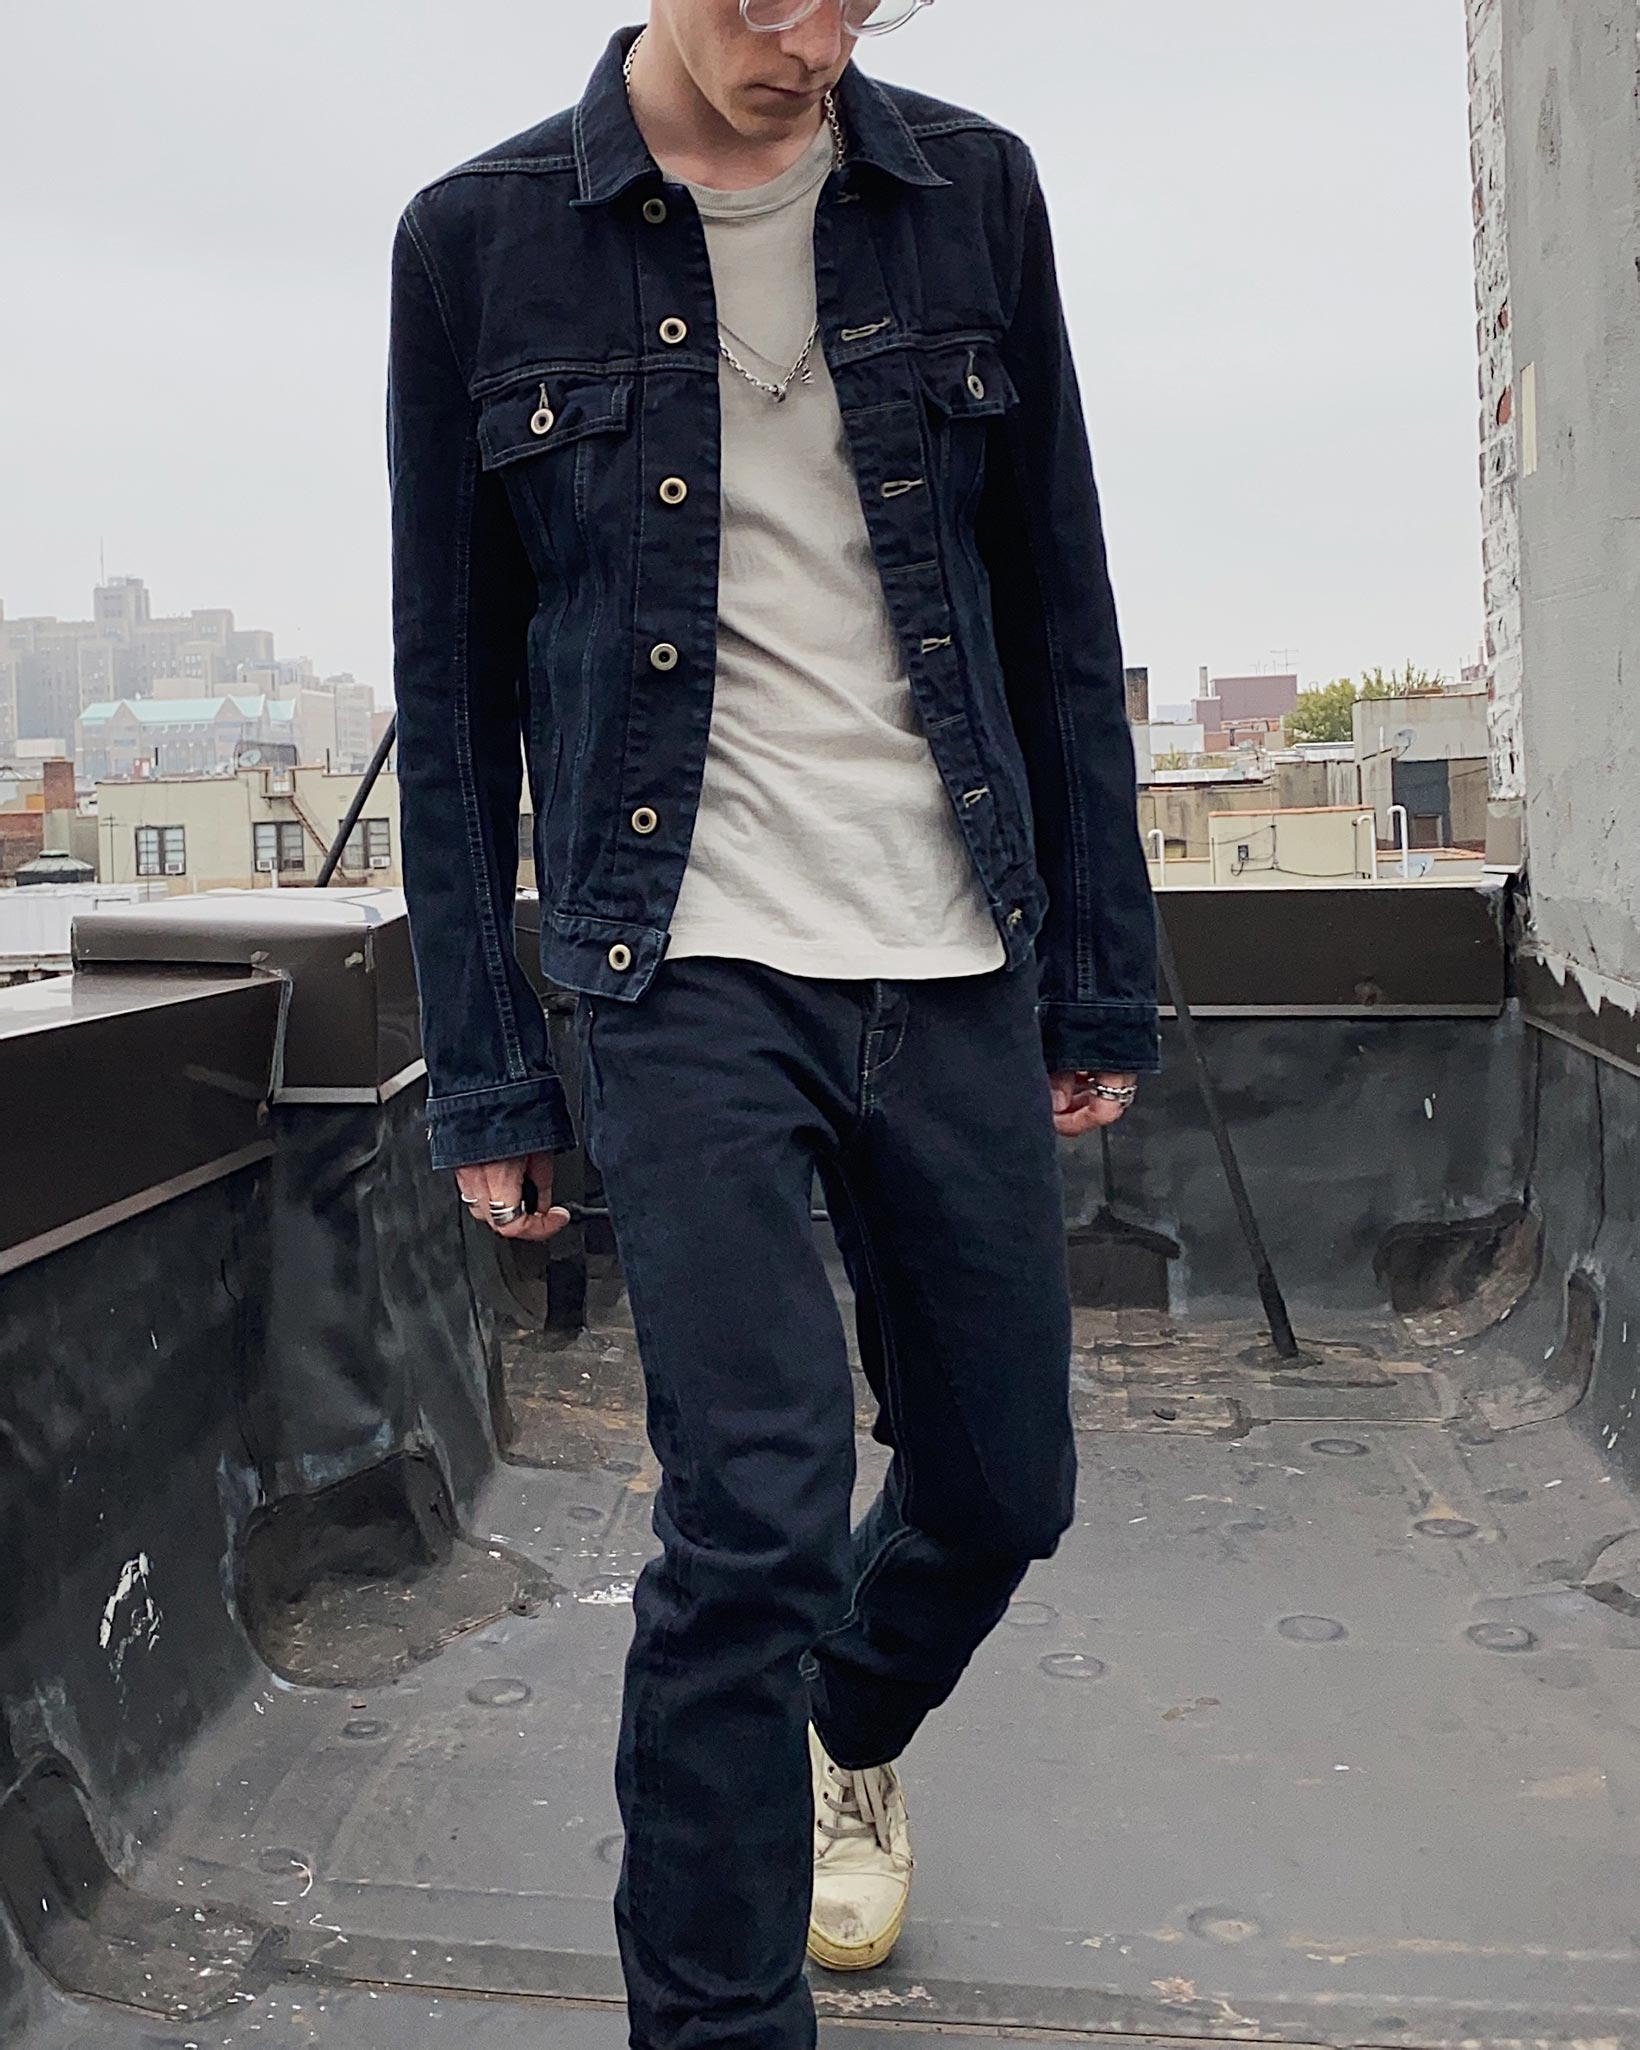 Rick Owens DRKSHDW Worker Jacket - Made in Japan Overdyed (Self Edge Exclusive) - Image 15